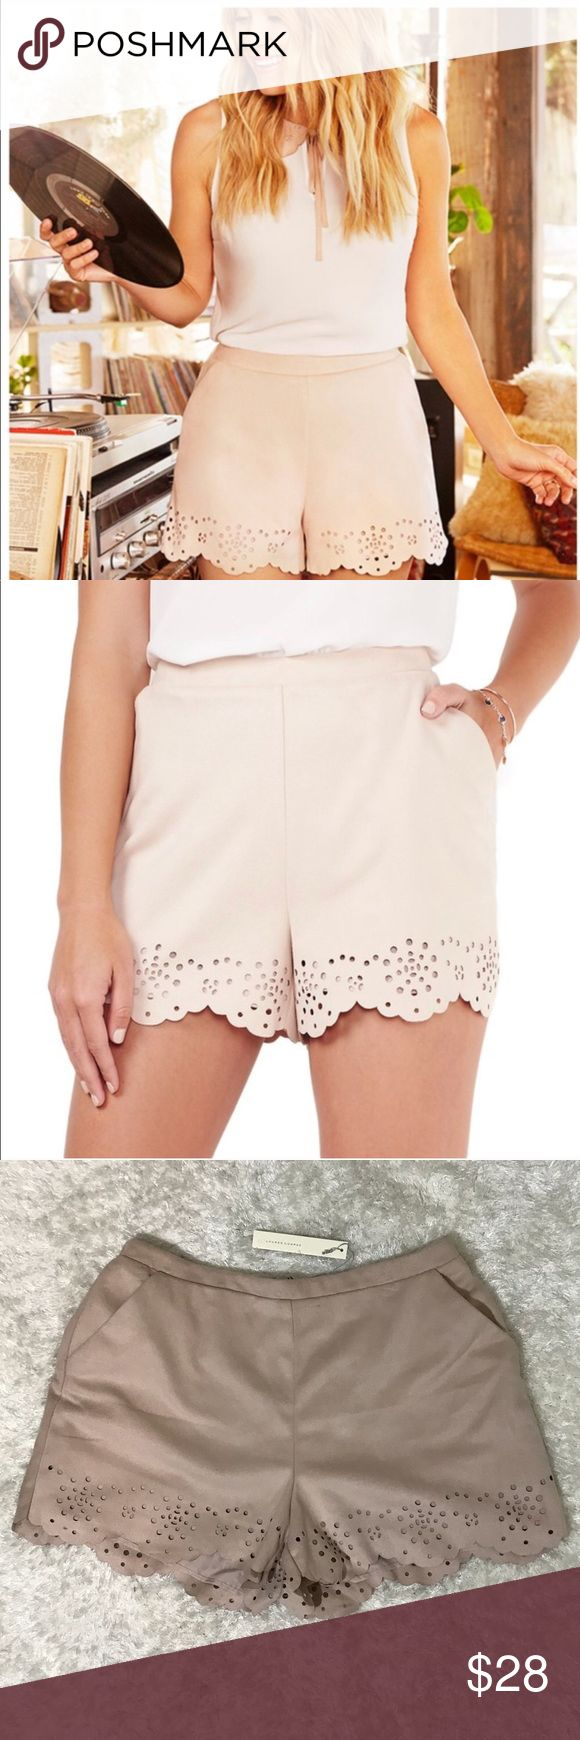 "LC Lauren Conrad faux suede shorts eyelet scallop Color-neutral blush Patched and pieced Lasercut  Elevate your warm weather wardrobe with these women's faux-suede shorts from LC Lauren Conrad. The scalloped eyelet hem adds a sophisticated touch to your casual style.  PRODUCT FEATURES 	•	Scalloped hem with eyelet details 	•	2-pocket 	•	Faux-suede construction 	•	Lined FIT & SIZING 	•	Midrise sits above the hip 	•	Elastic waistband Measurements taken laying flat Waist-15"" Rise-11.5""…"